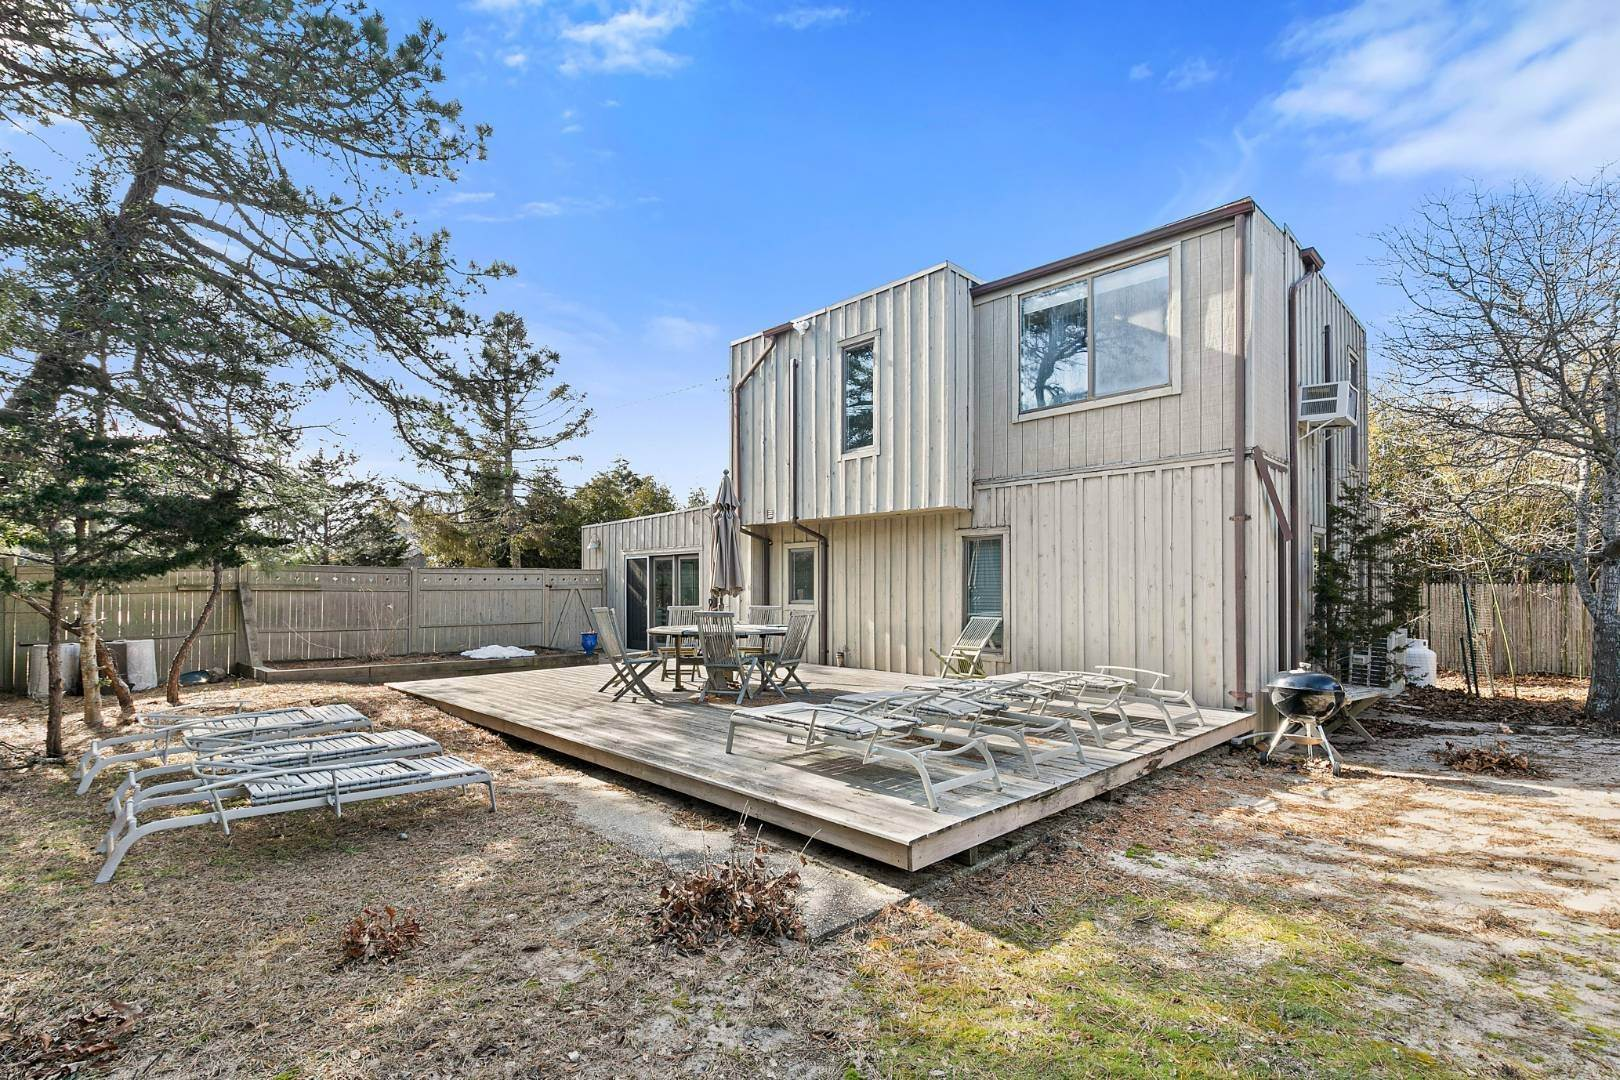 Single Family Home for Sale at Haven By The Ocean 53 Clinton Academy Lane, Amagansett, NY 11930